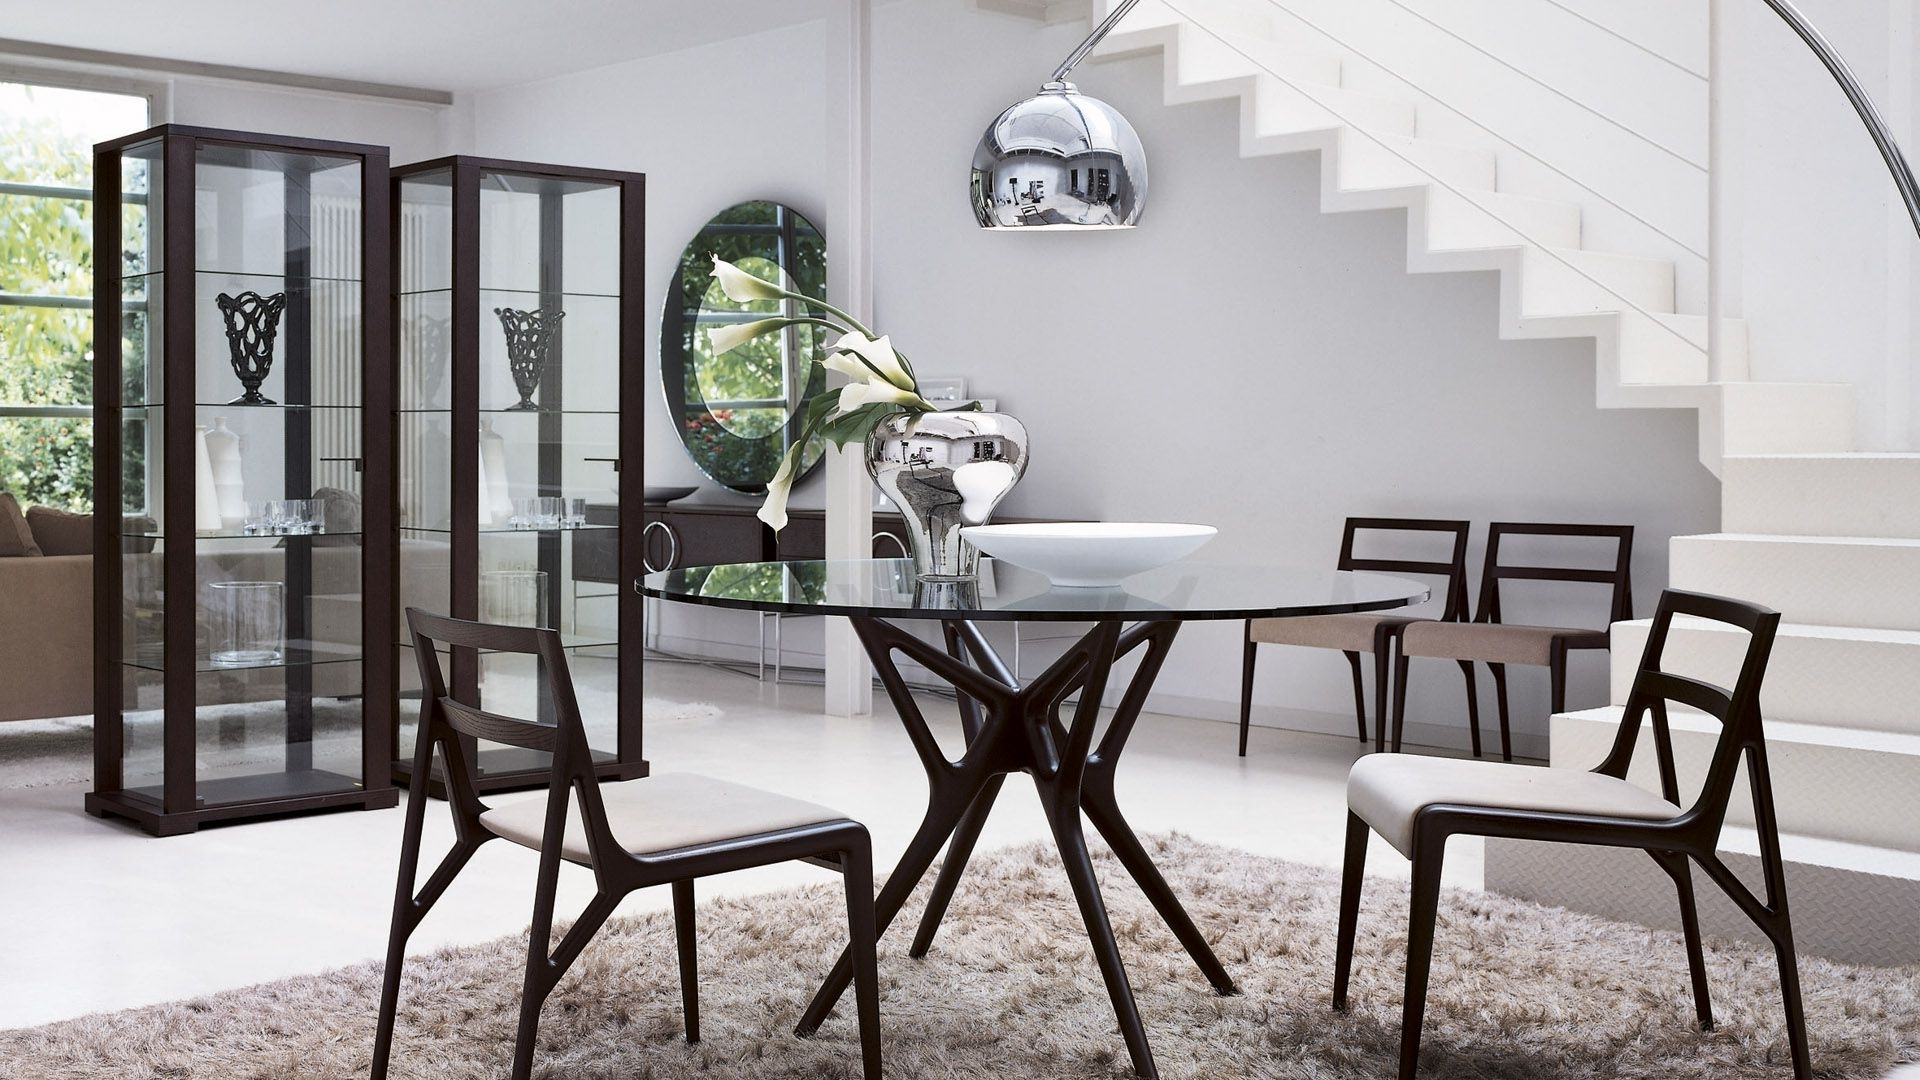 Perth Glass Dining Tables Within Well Liked Contemporary, Modern Luxury Furniture Perth Stores – Contempo (View 18 of 25)